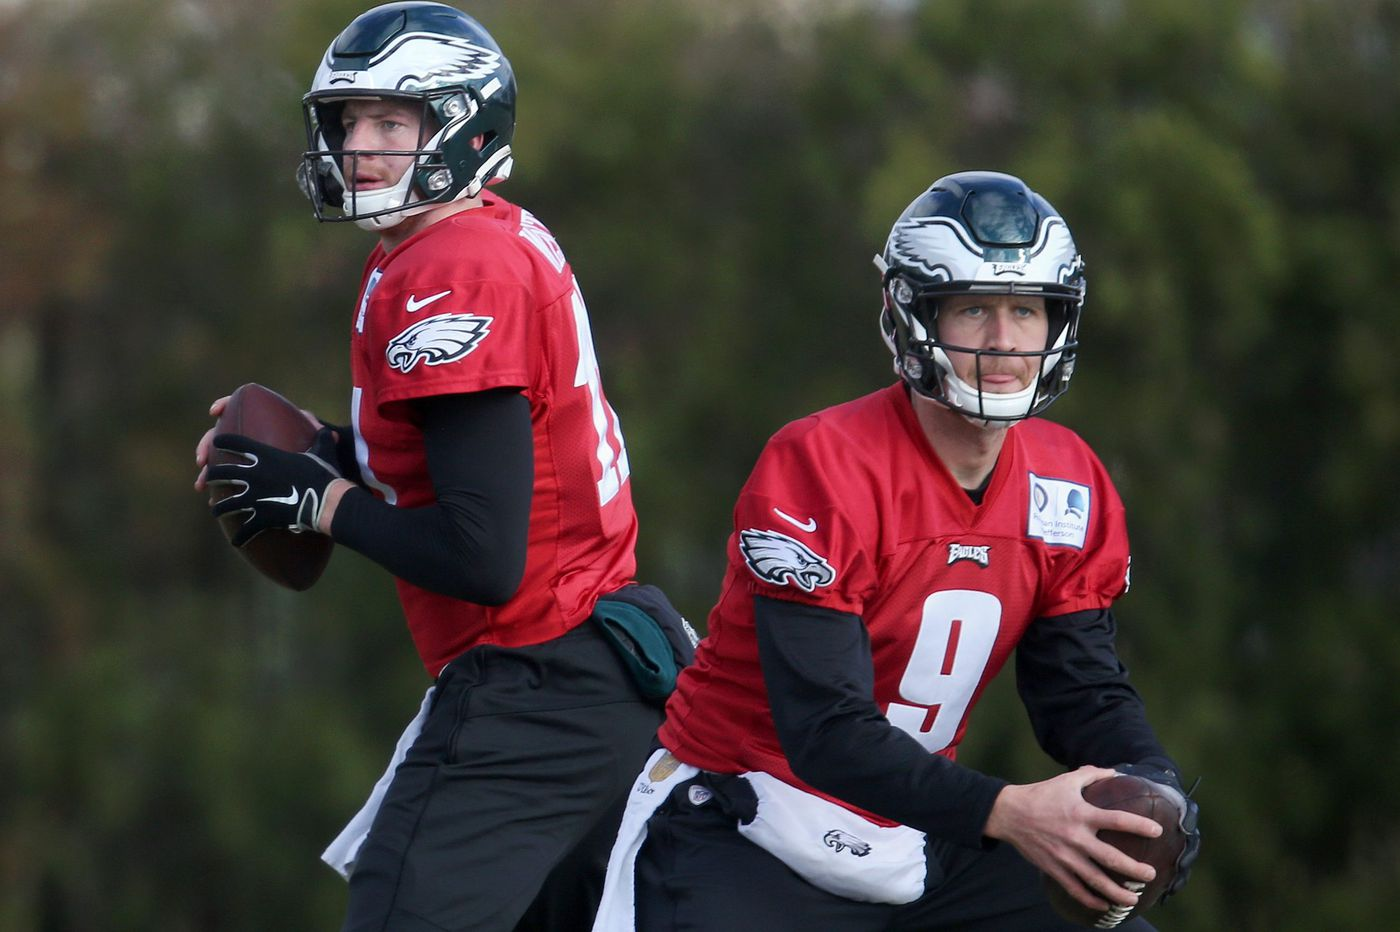 Nick Foles is 30. Carson Wentz is 26. How long can an athlete stay in top form?